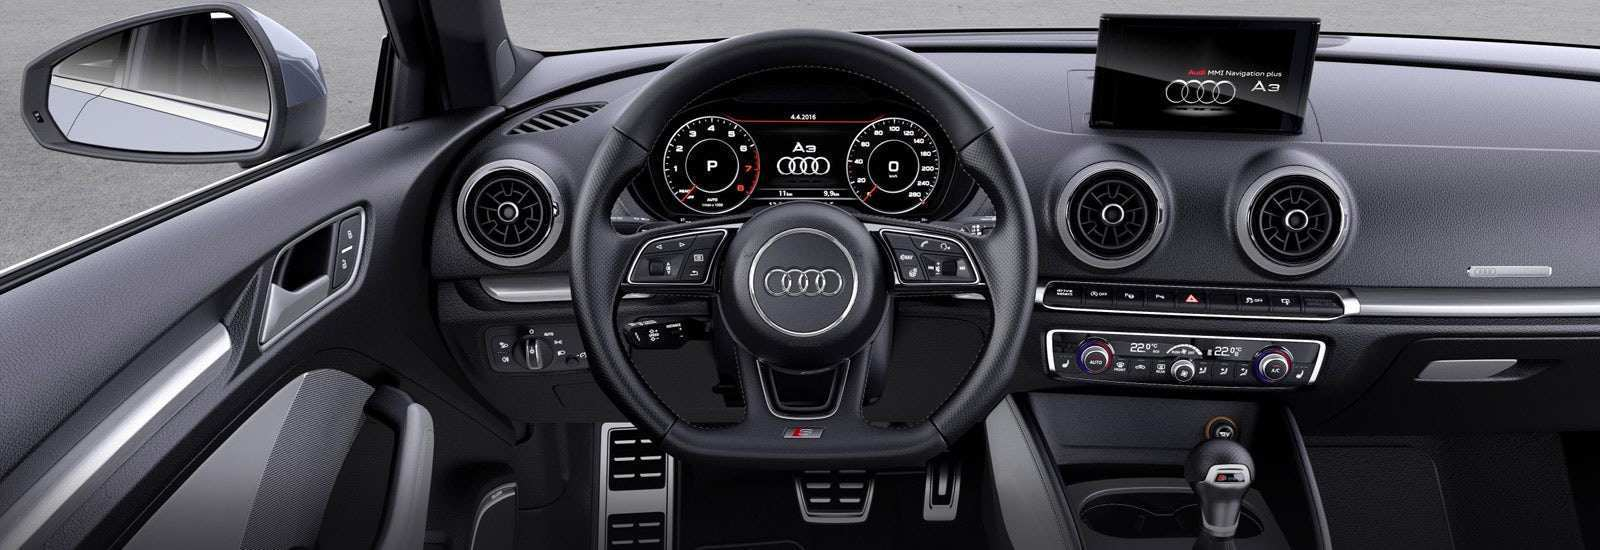 58 Best Review Audi A3 2019 Uk Research New with Audi A3 2019 Uk